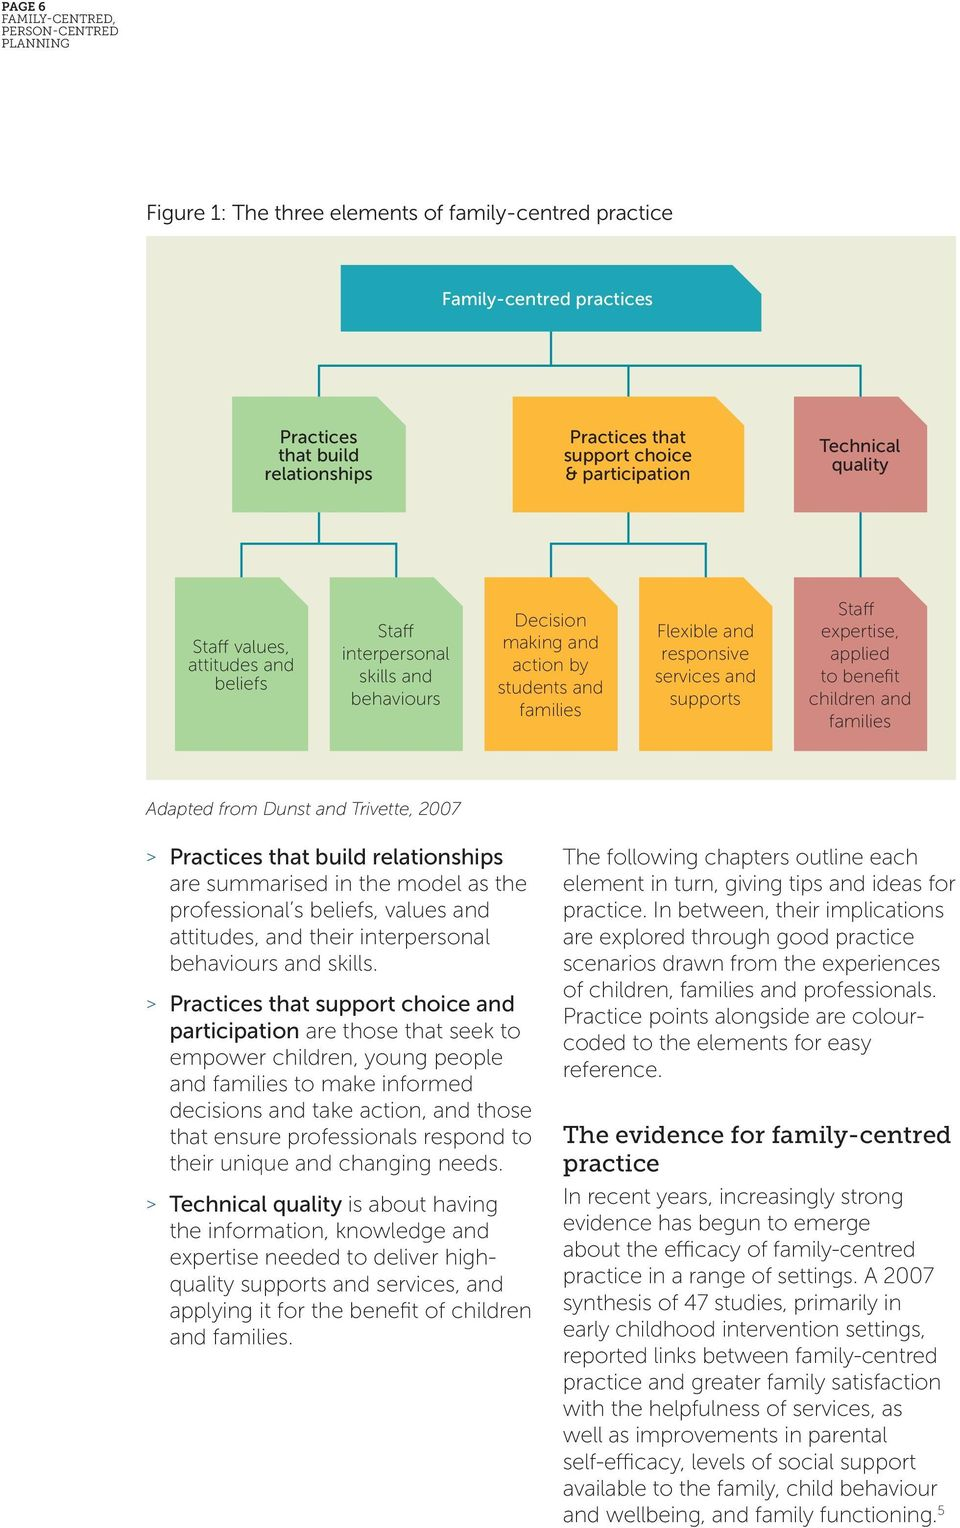 benefit children and families Adapted from Dunst and Trivette, 2007 > Practices that build relationships are summarised in the model as the professional s beliefs, values and attitudes, and their